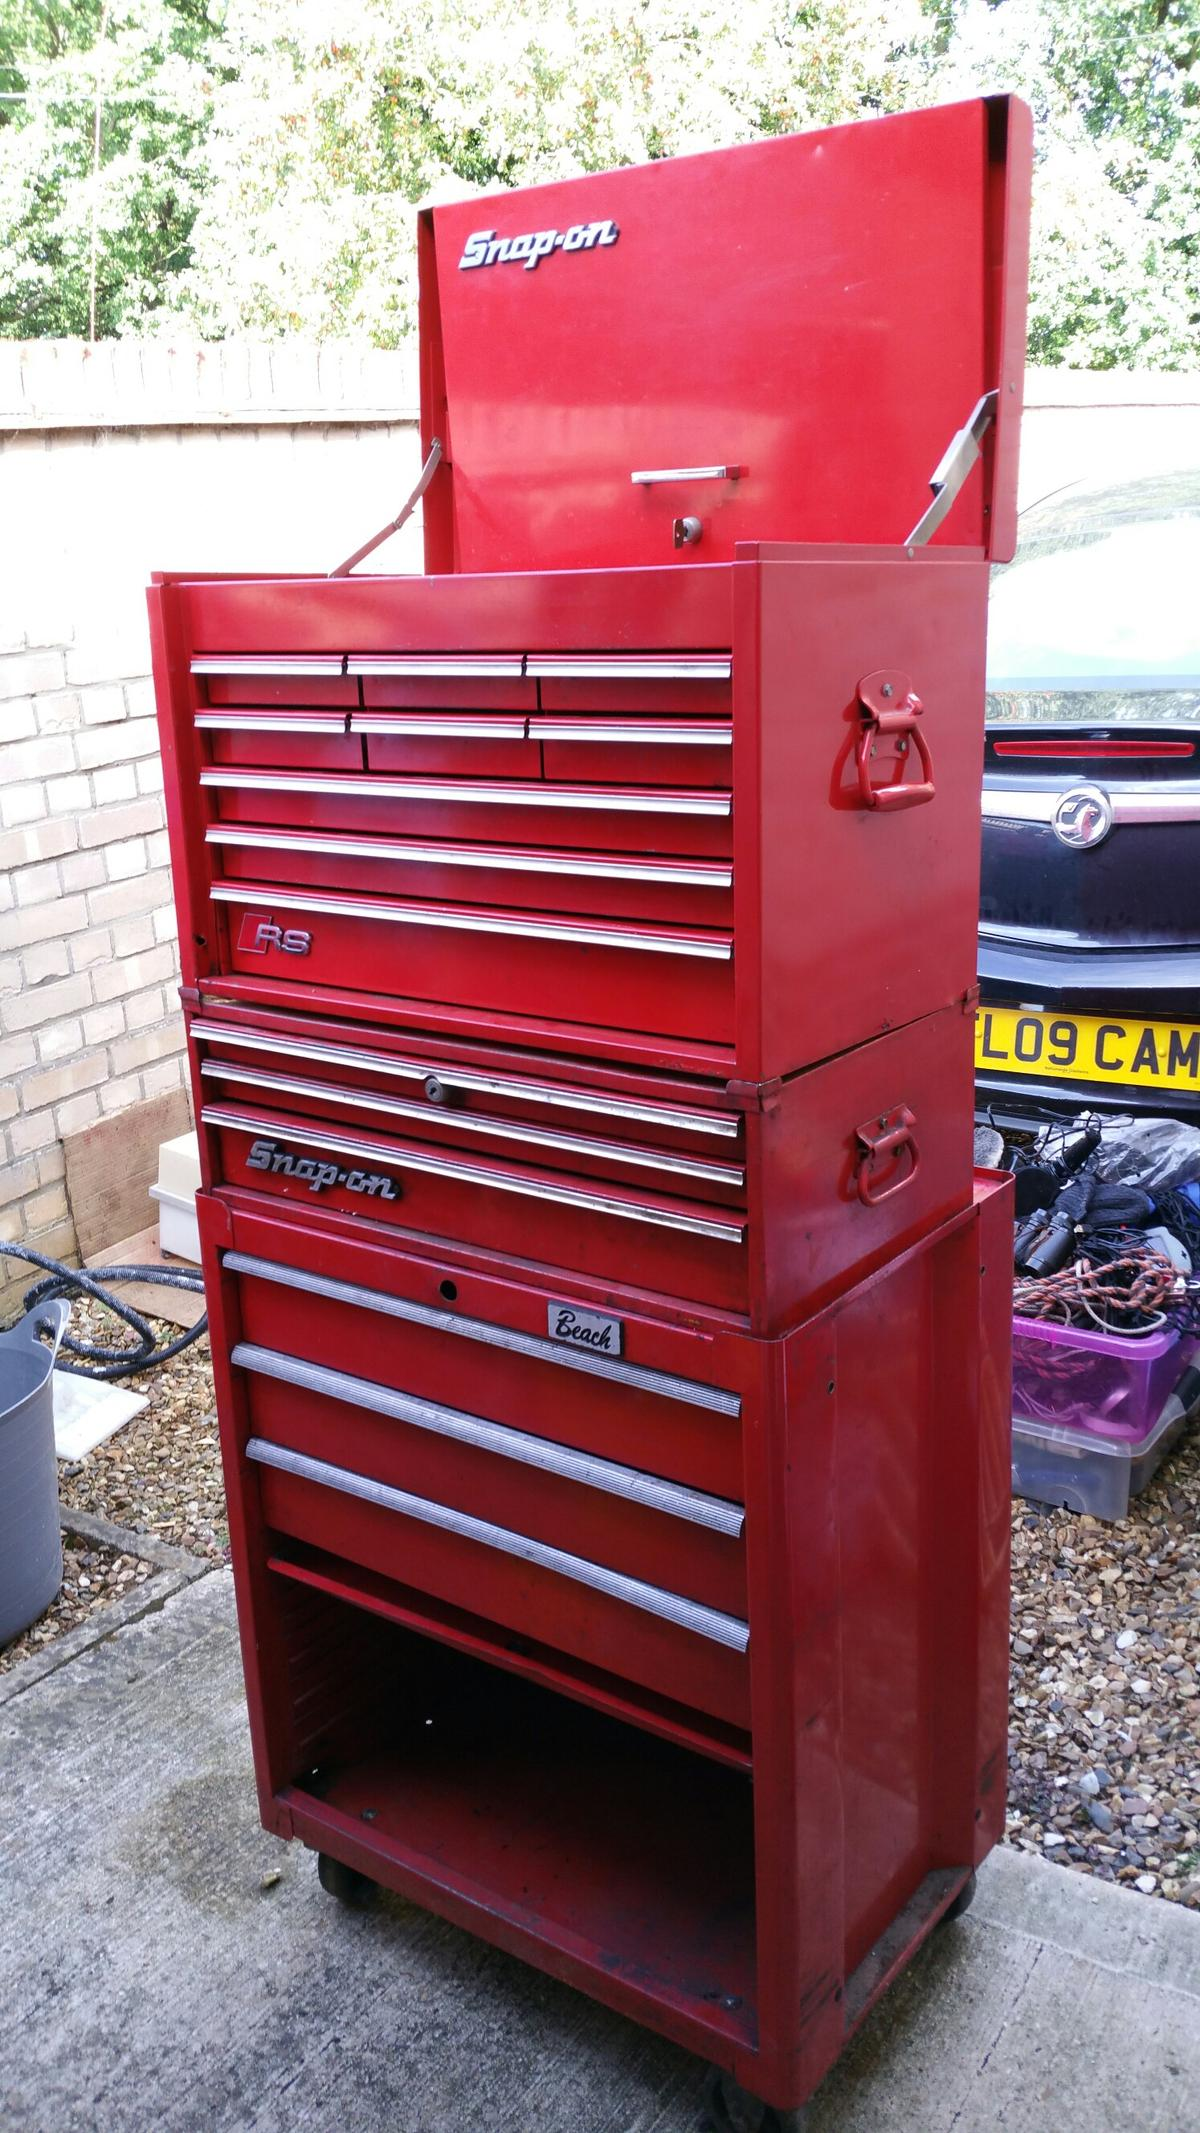 2 Snap On Tool Boxes And Beach Roller Cabine In Cb6 Wilburton Fur